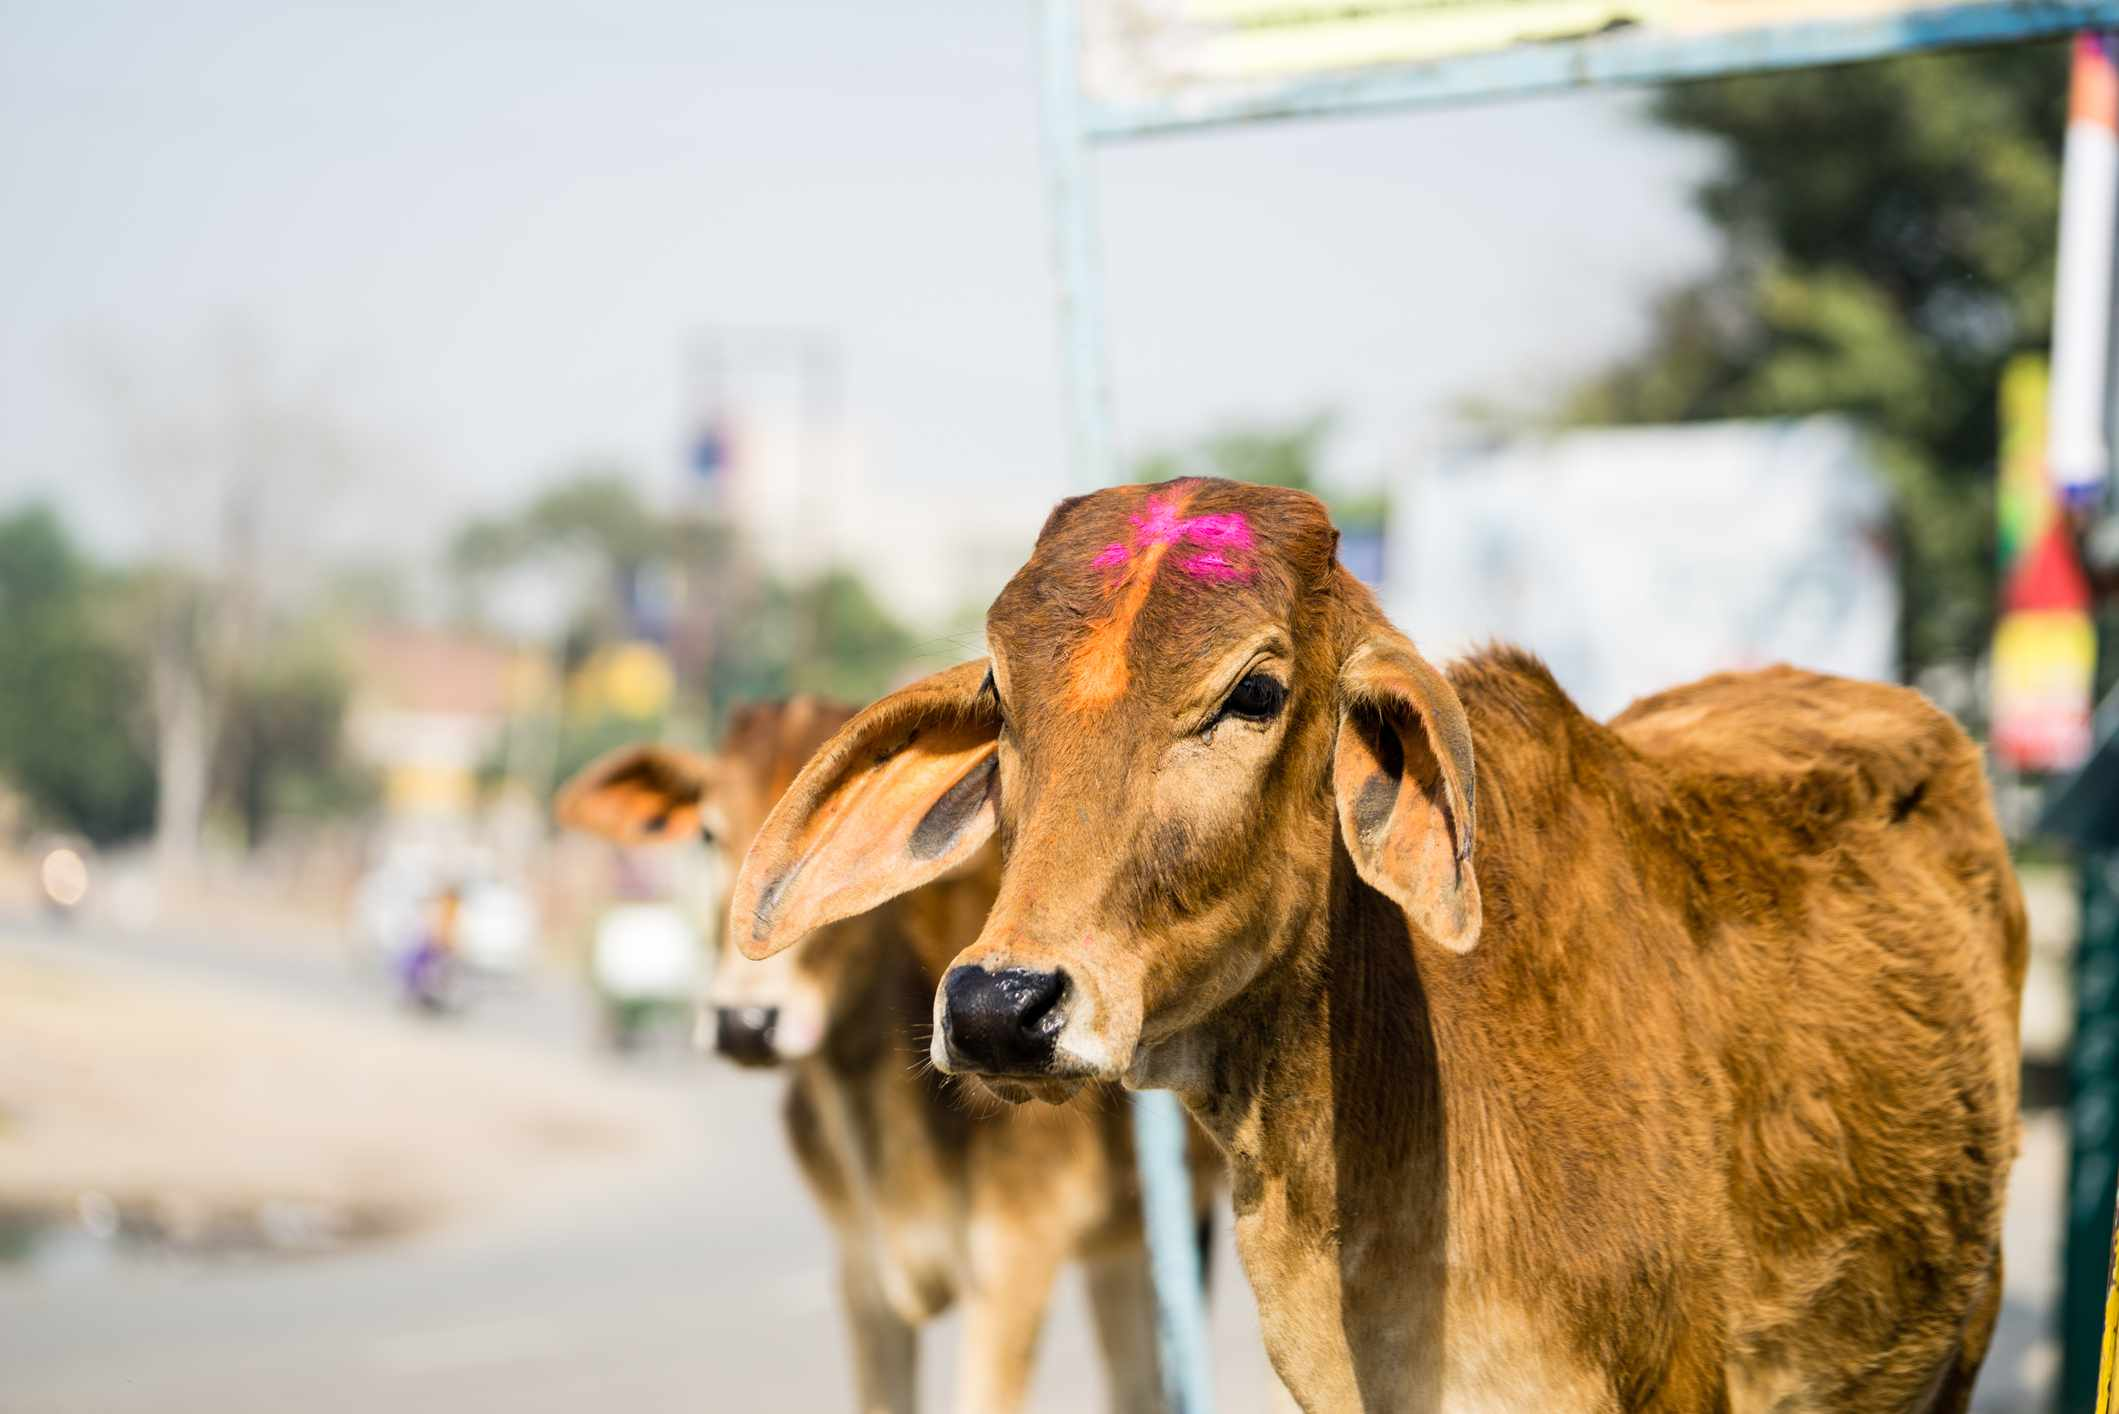 A cow on the street with a dab of pink paint on its forehead